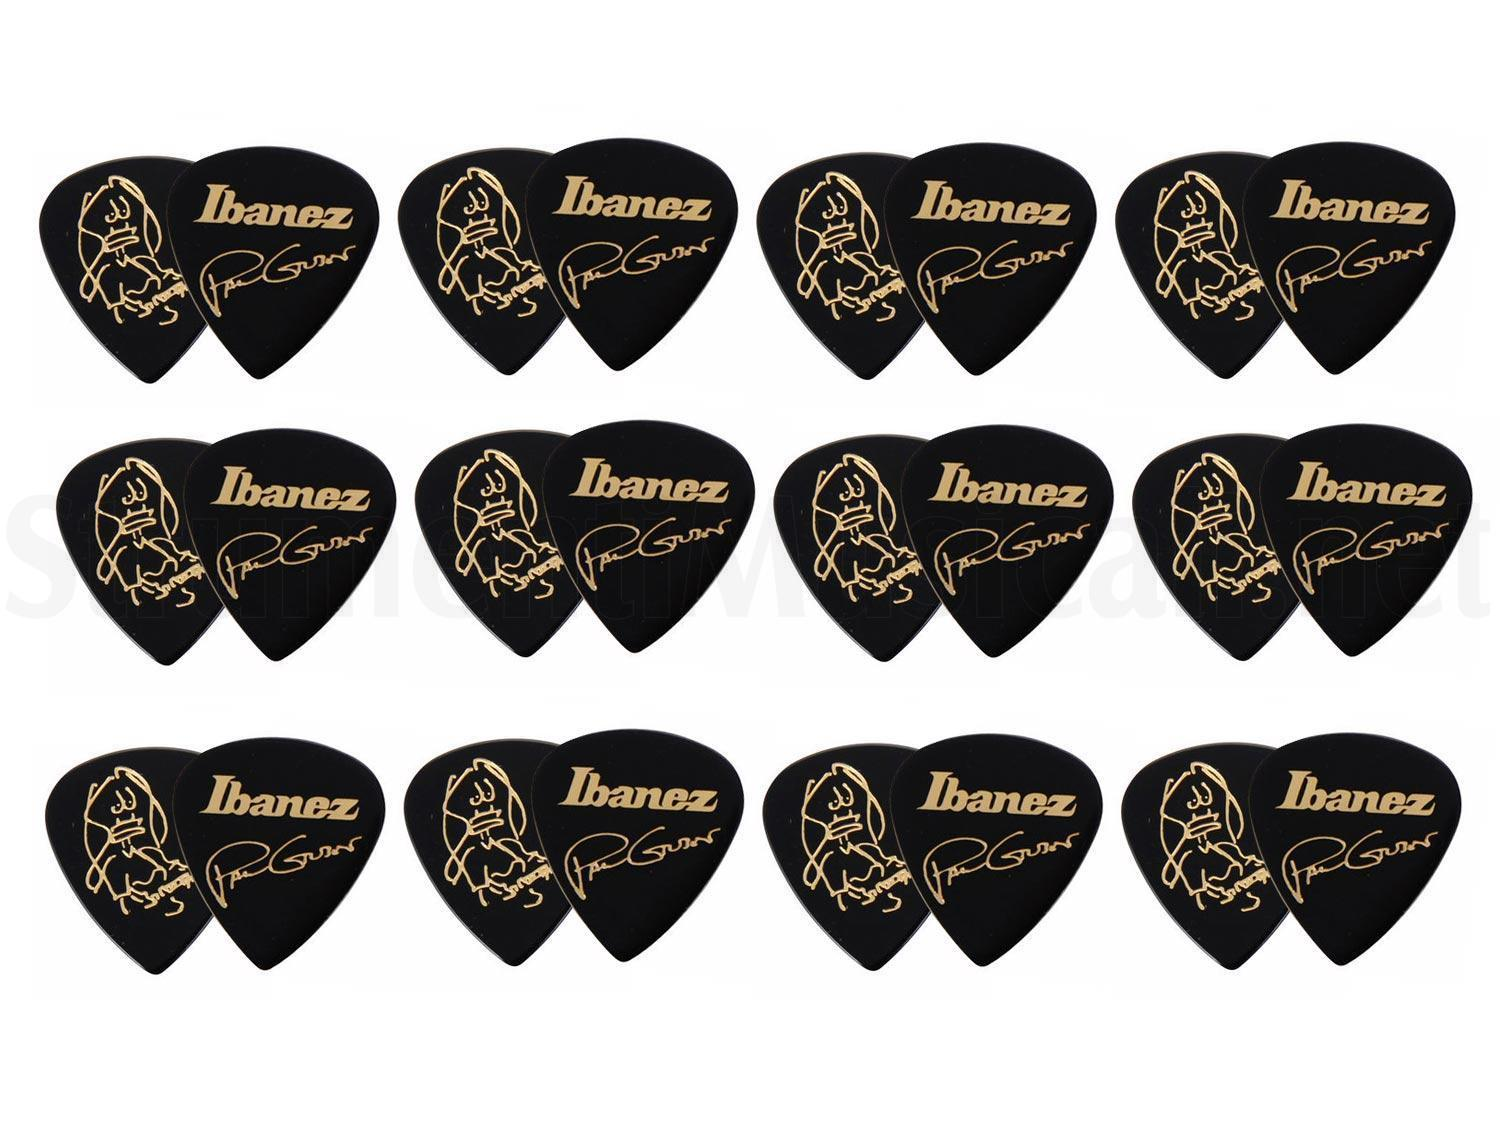 IBANEZ Paul Gilbert 50 Pack (50 PICKS)